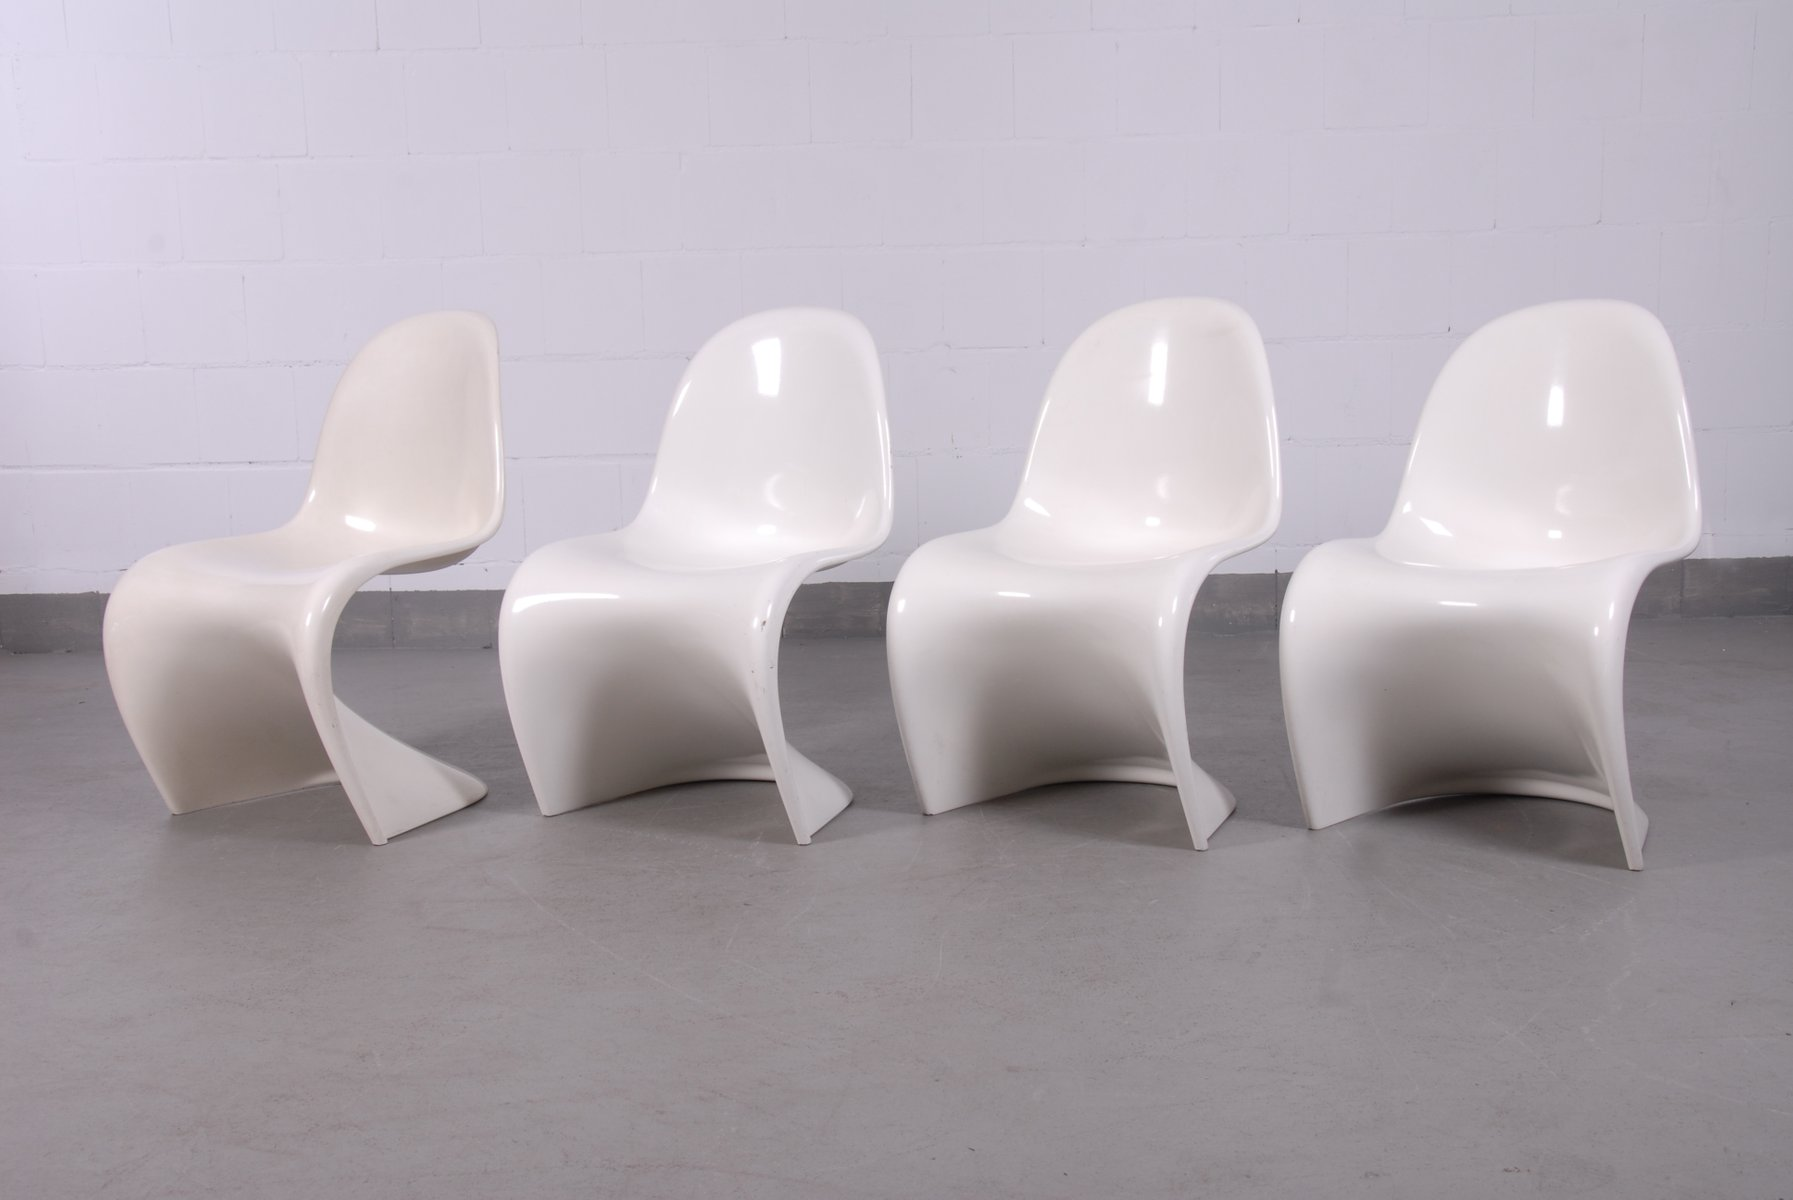 Off White Panton Chairs By Verner Panton For Fehlbaum, 1960s, Set Of 4